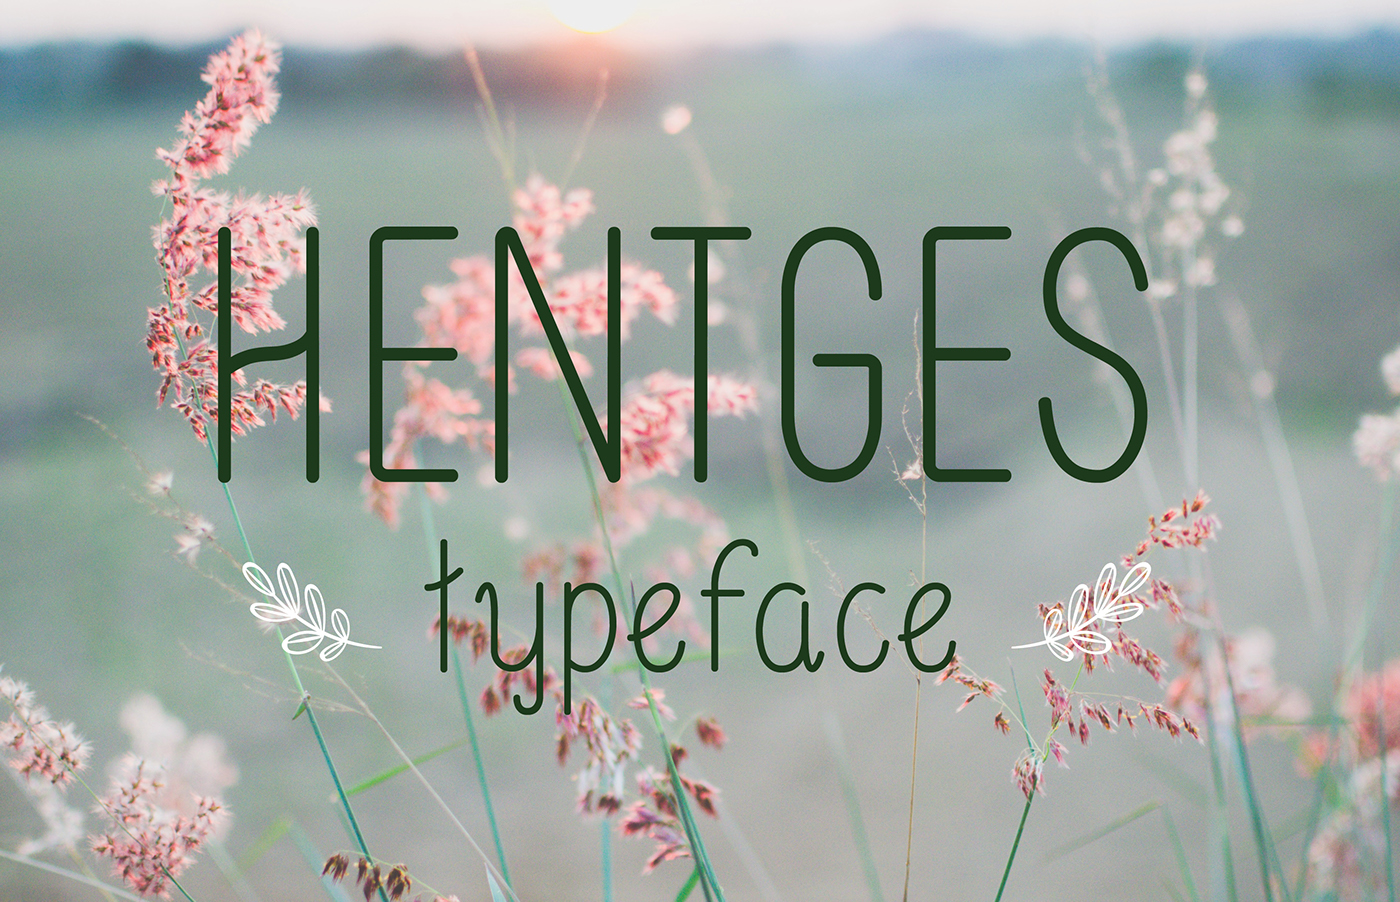 Free Download: Hentges Typeface